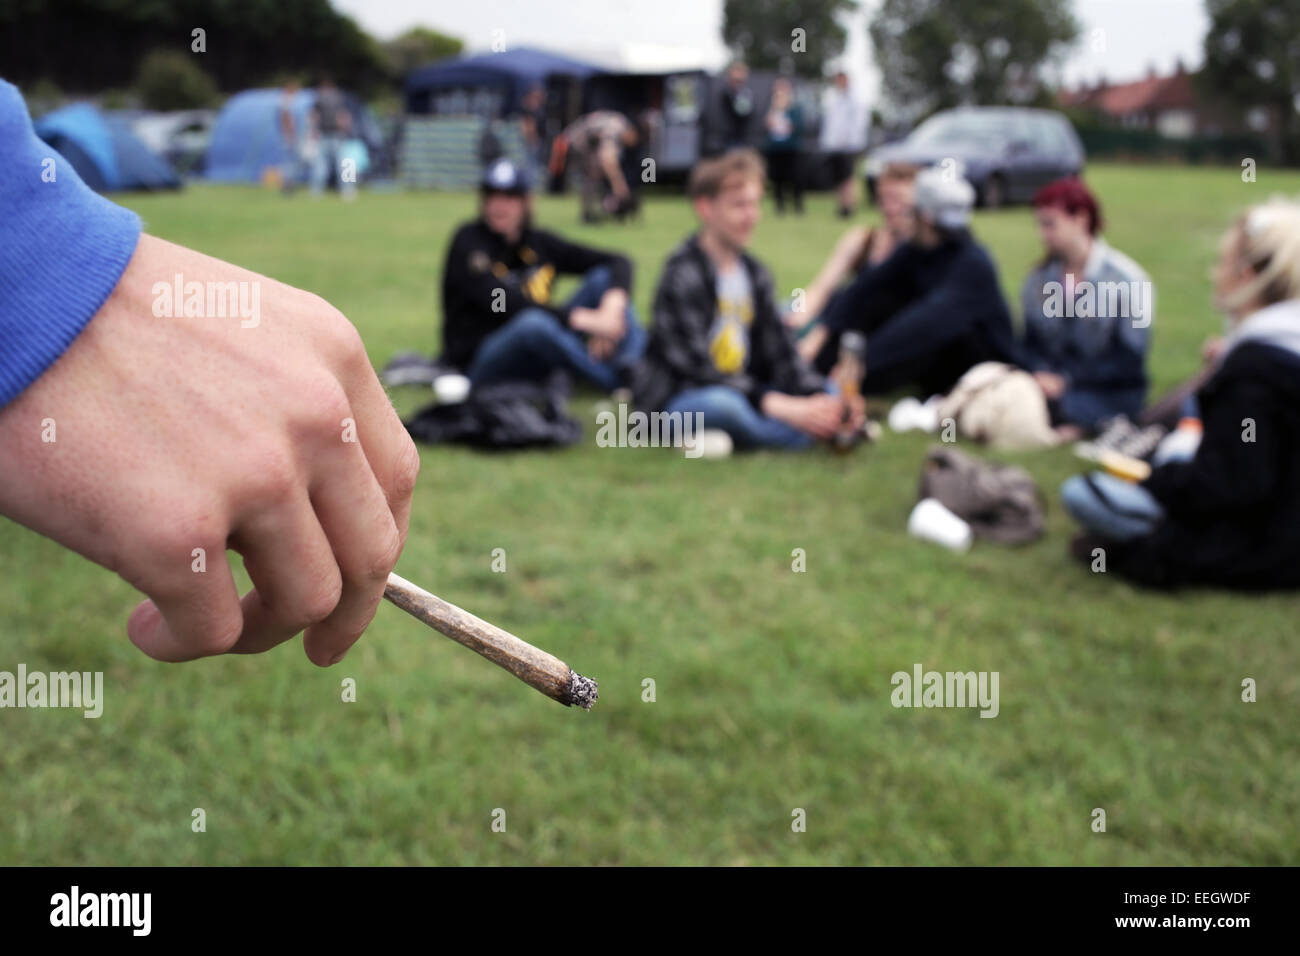 A skunk cannabis joint at a cannabis festival in Redcar, Teesside, UK. - Stock Image